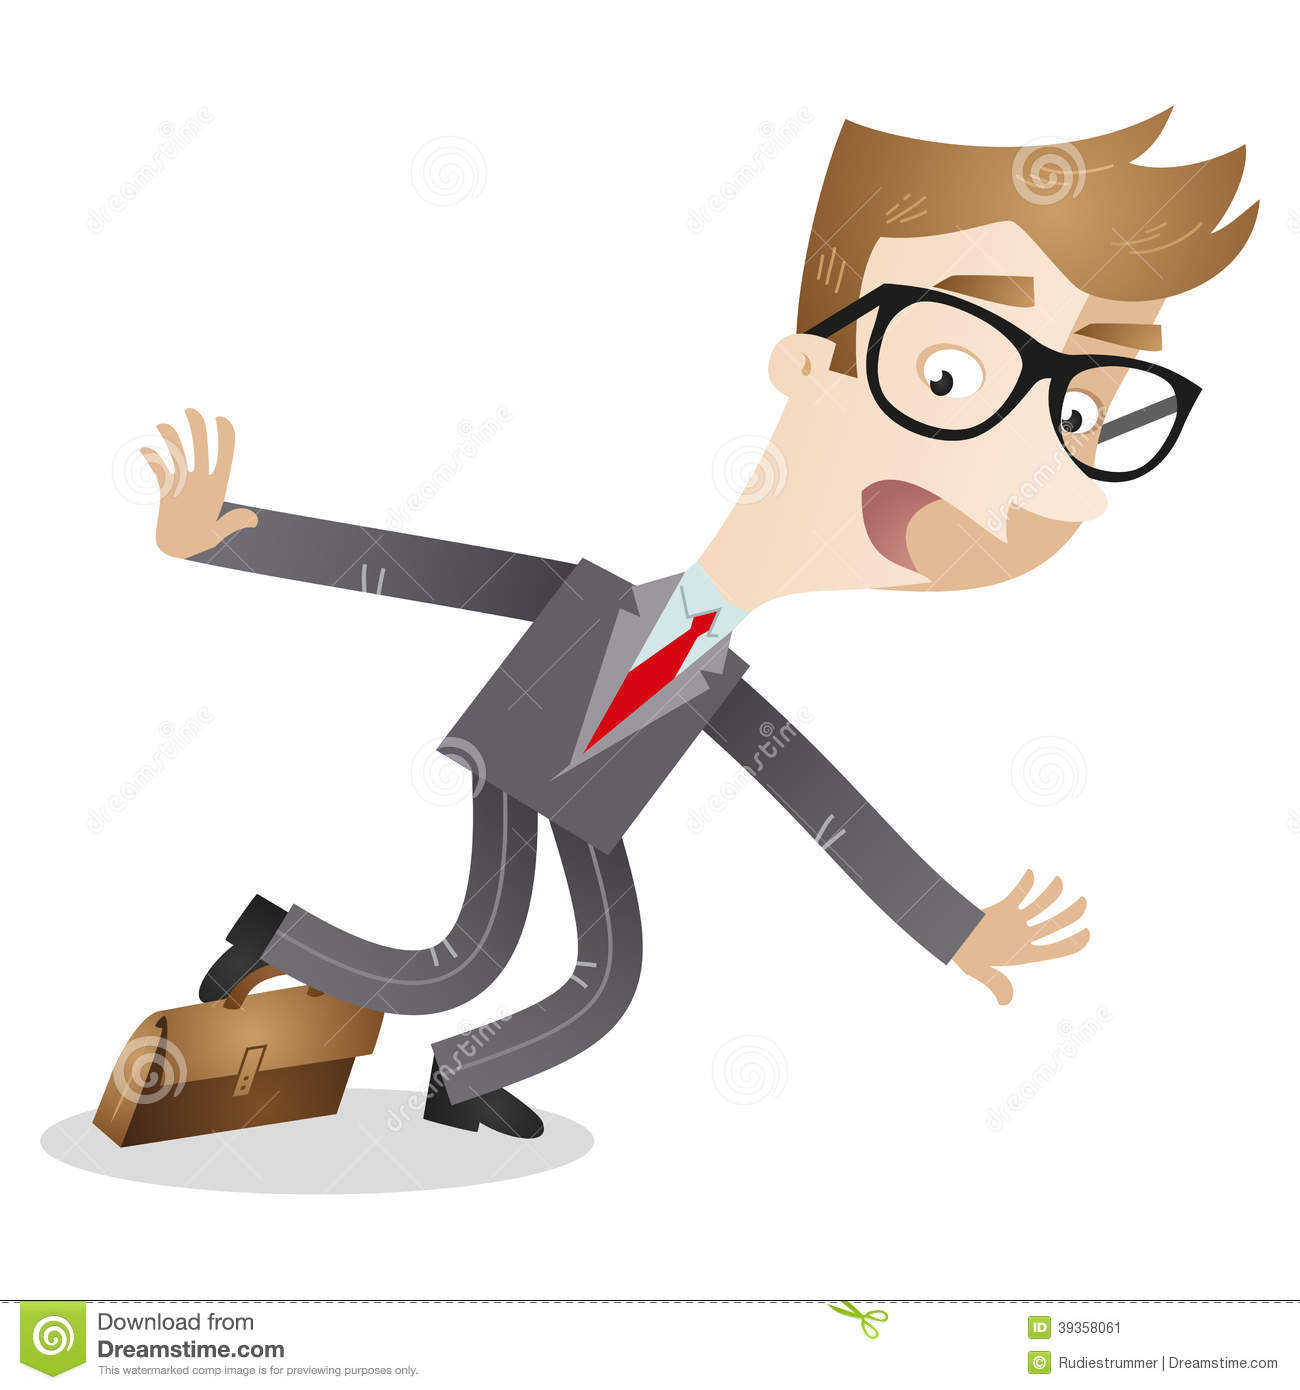 425730970998229488 furthermore Cheer Up 4 likewise Person Slipping besides Someone Fell Down In Floor Cliparts as well Man slipping clipart. on cartoon of someone falling down the stairs